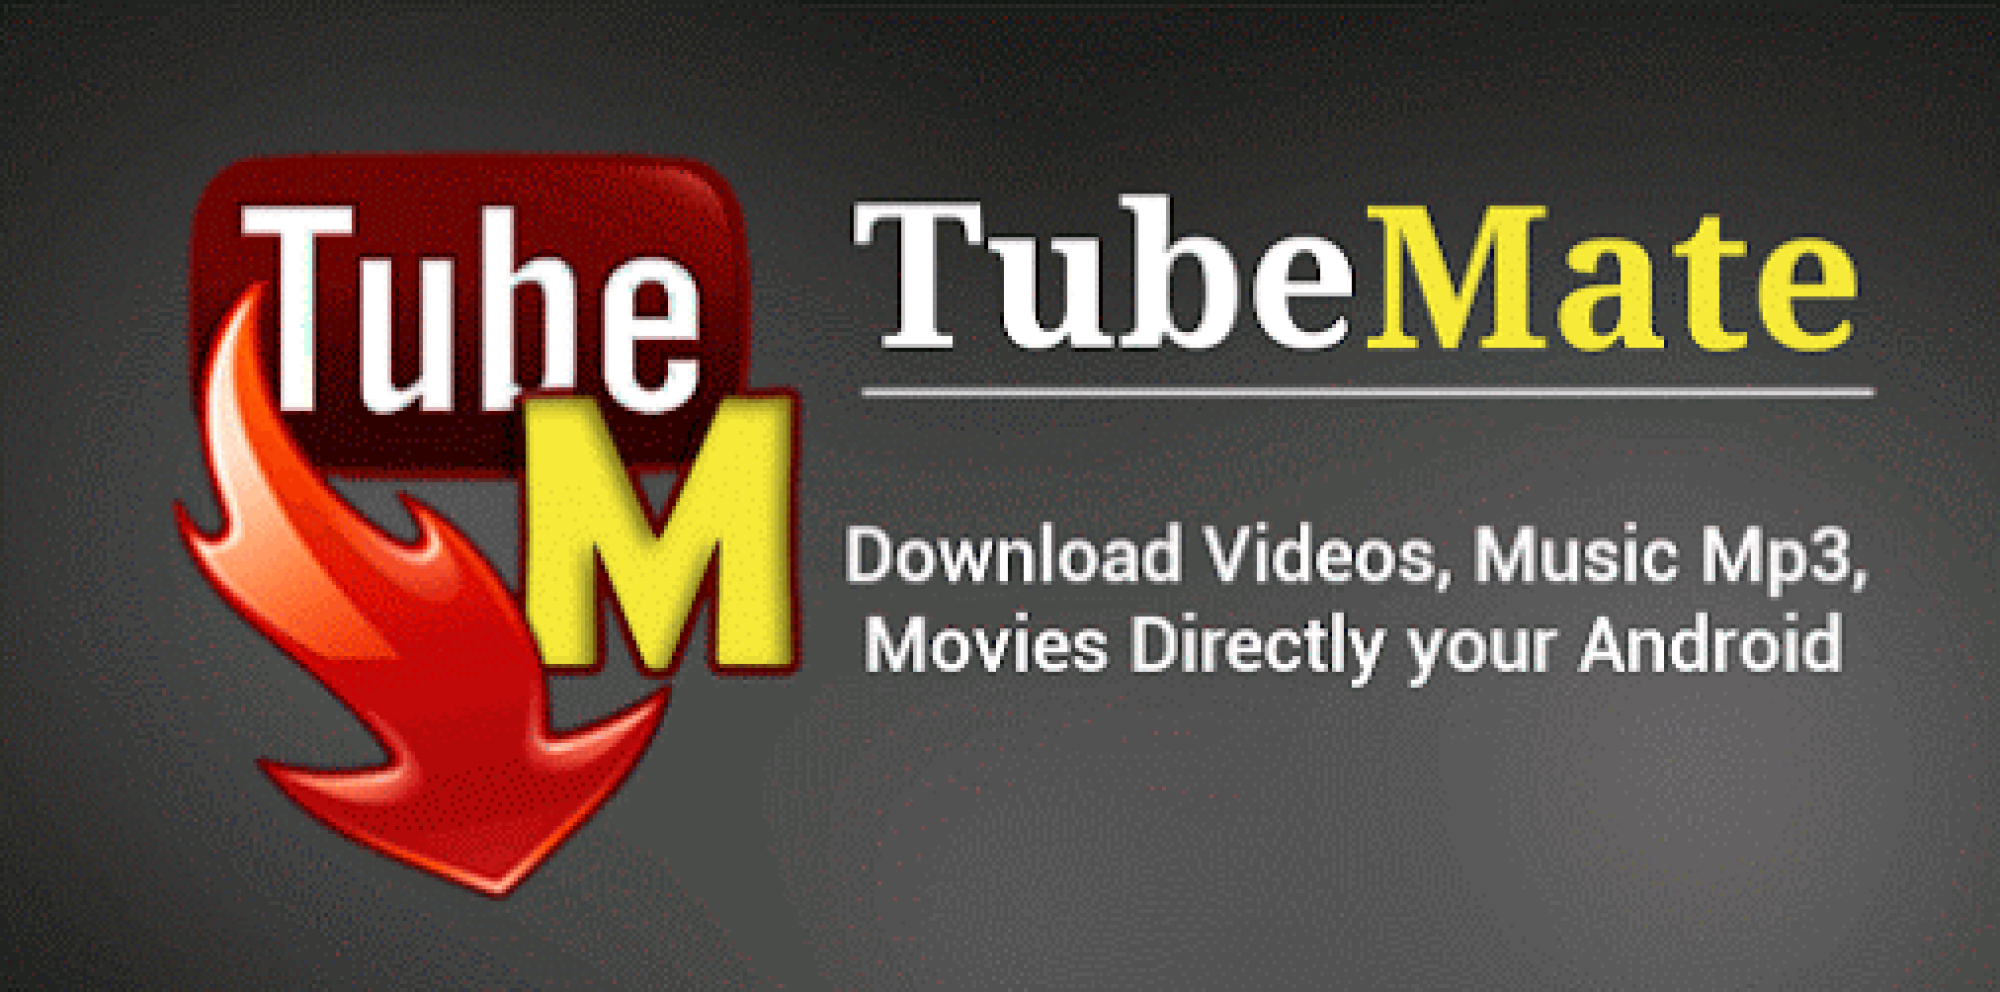 youtube mate 2.2.5